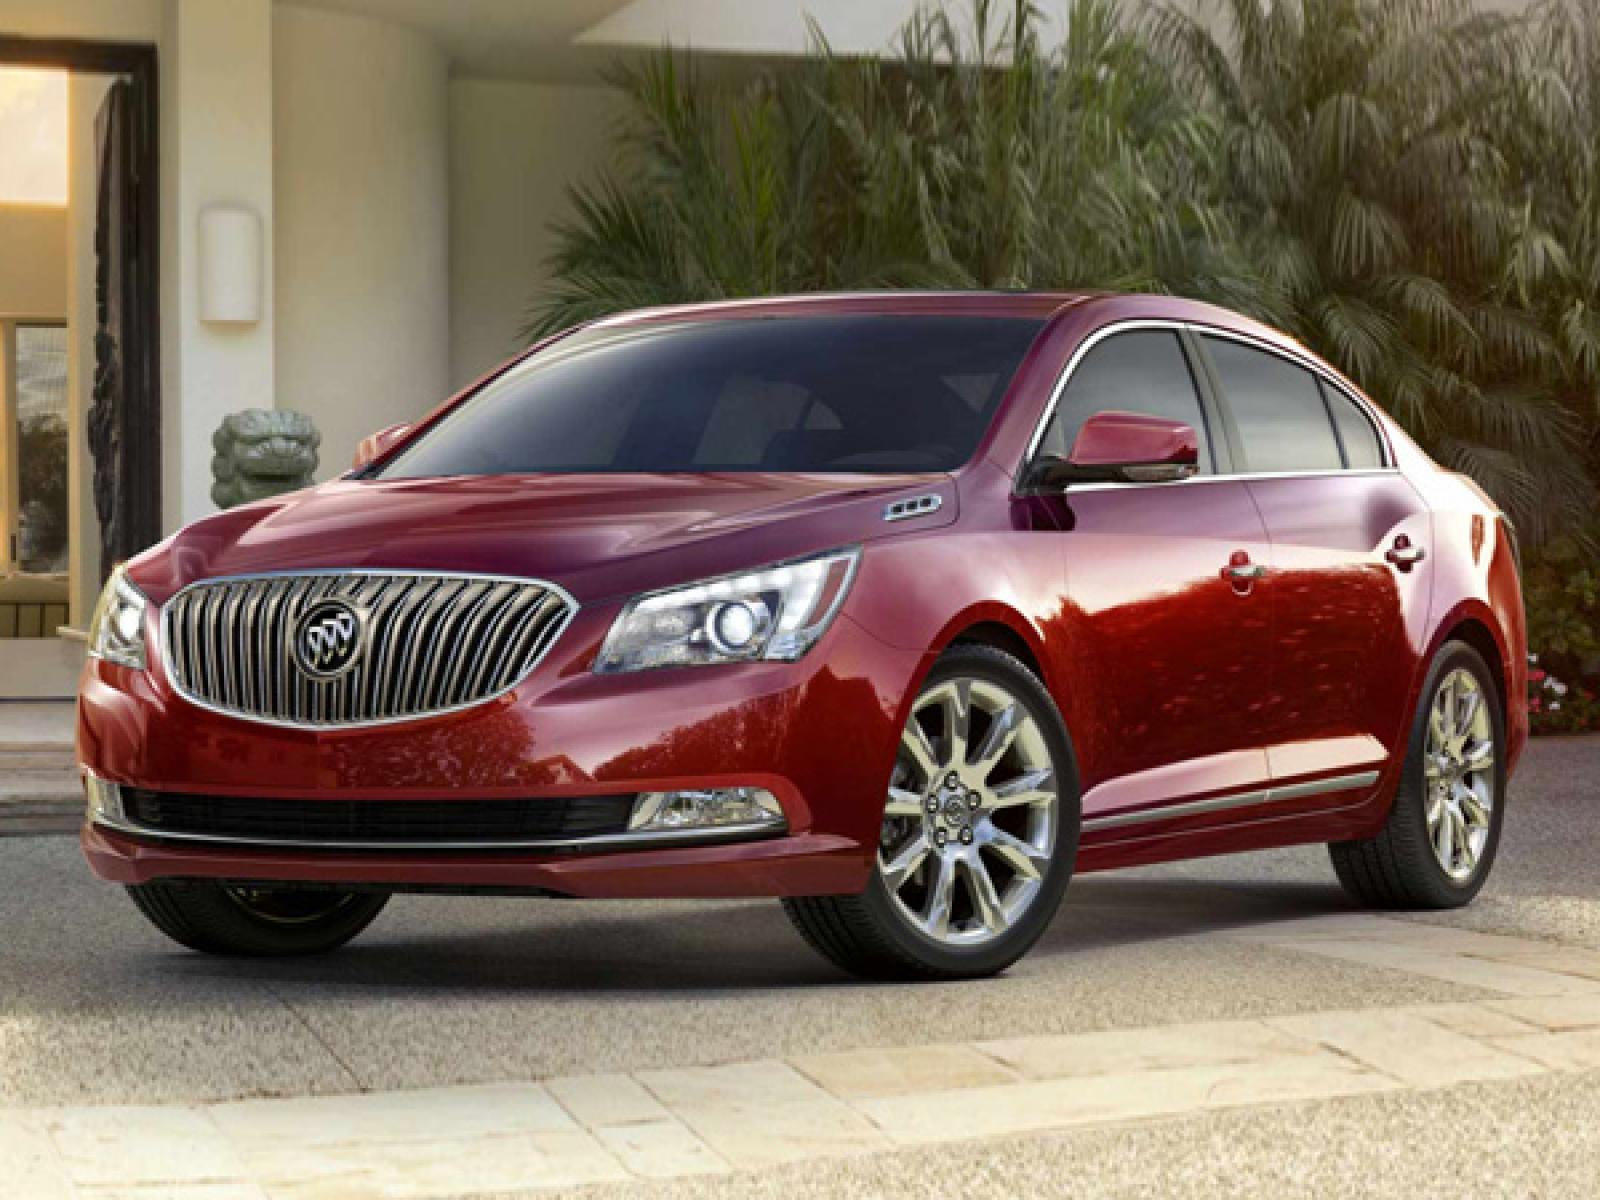 2015 buick lacrosse information and photos zombiedrive. Black Bedroom Furniture Sets. Home Design Ideas